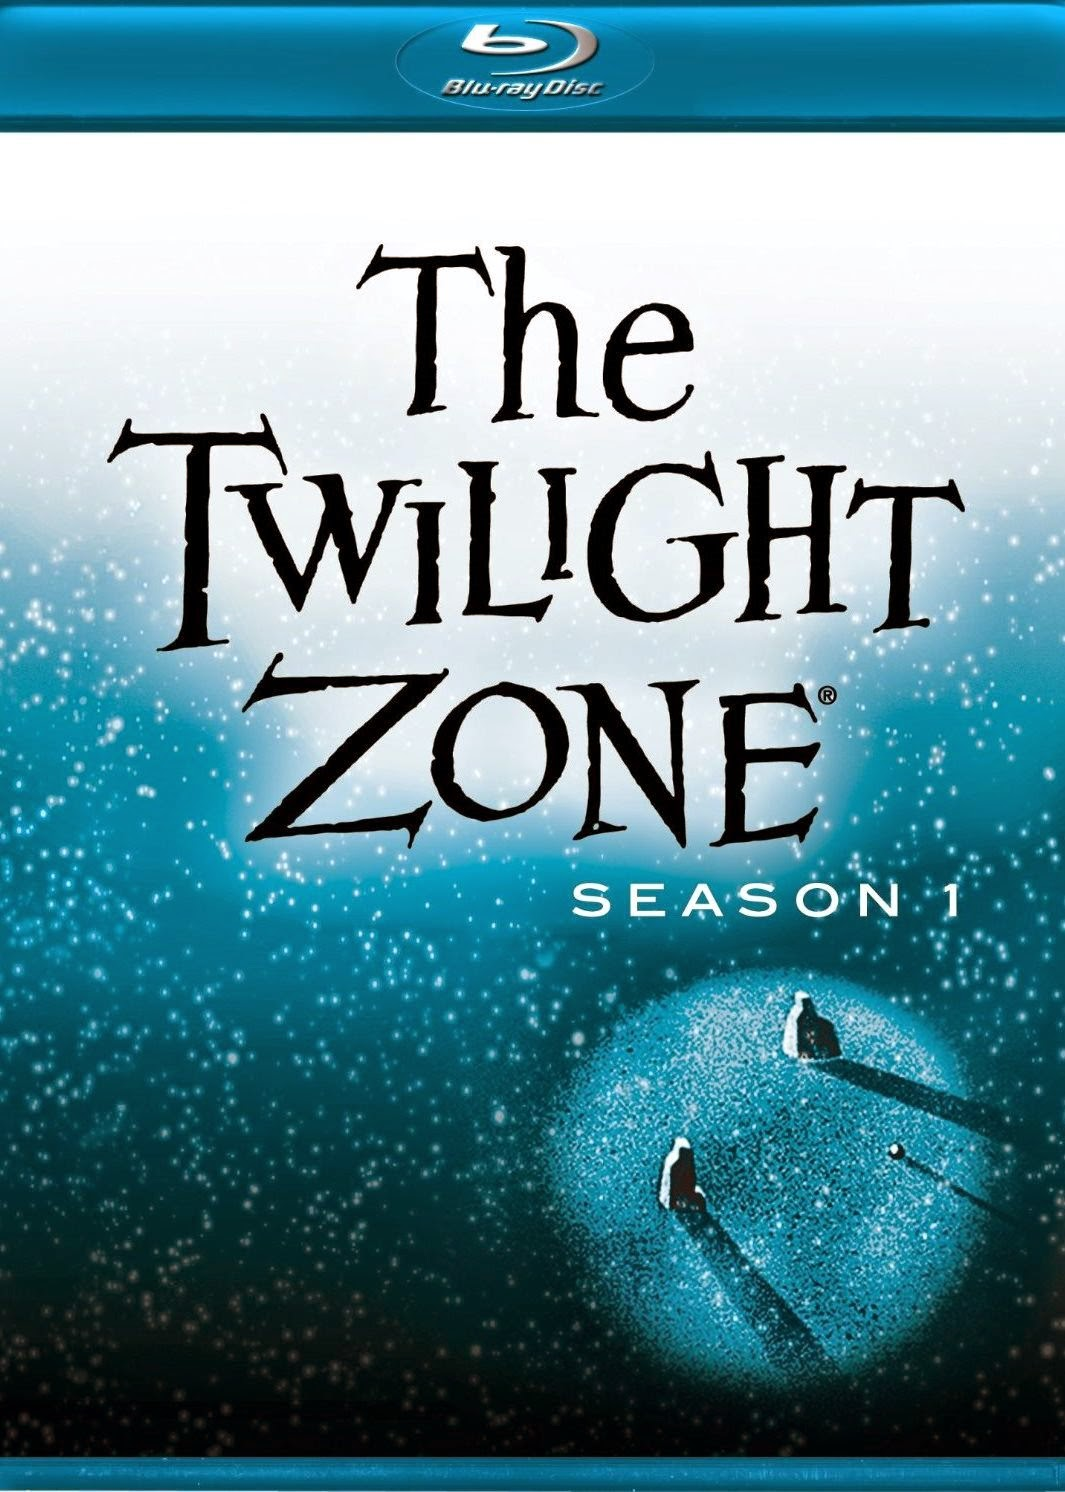 The Twilight Zone Season 1  Blu-ray Movie